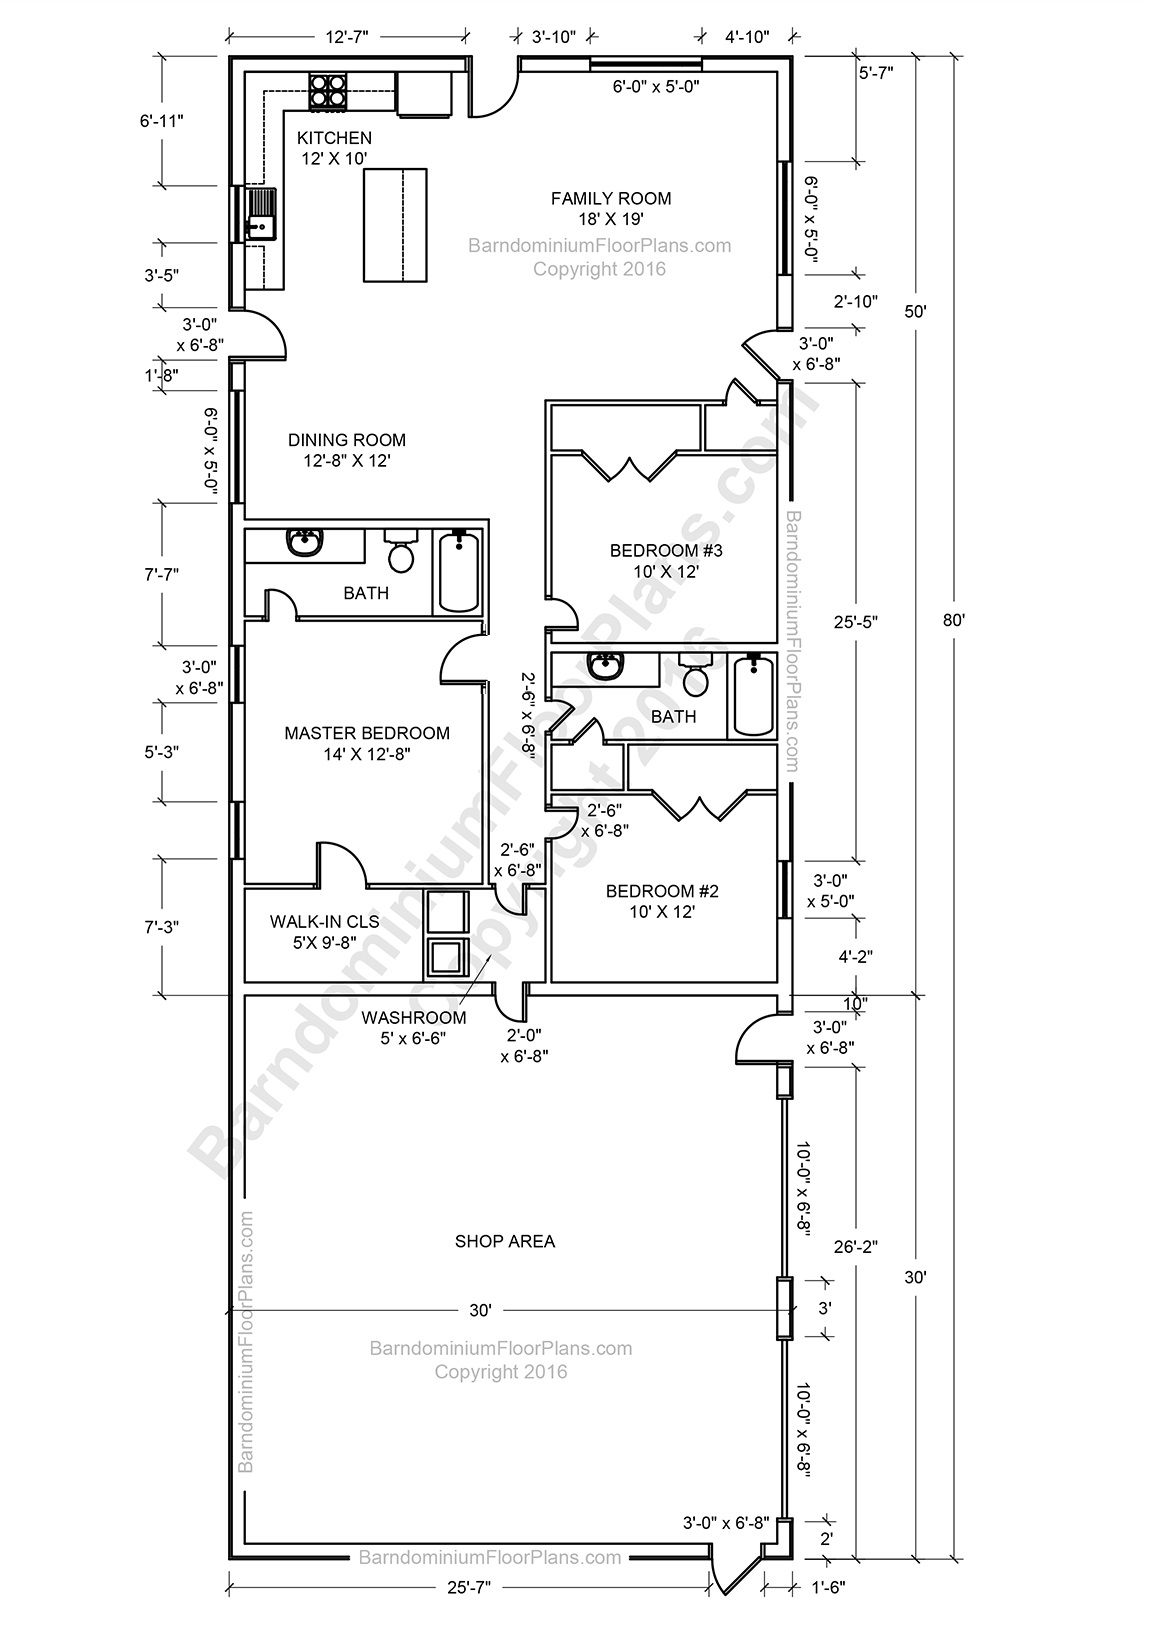 Barndominium floor plans pole barn house plans and metal for Floor plans for pole barn homes